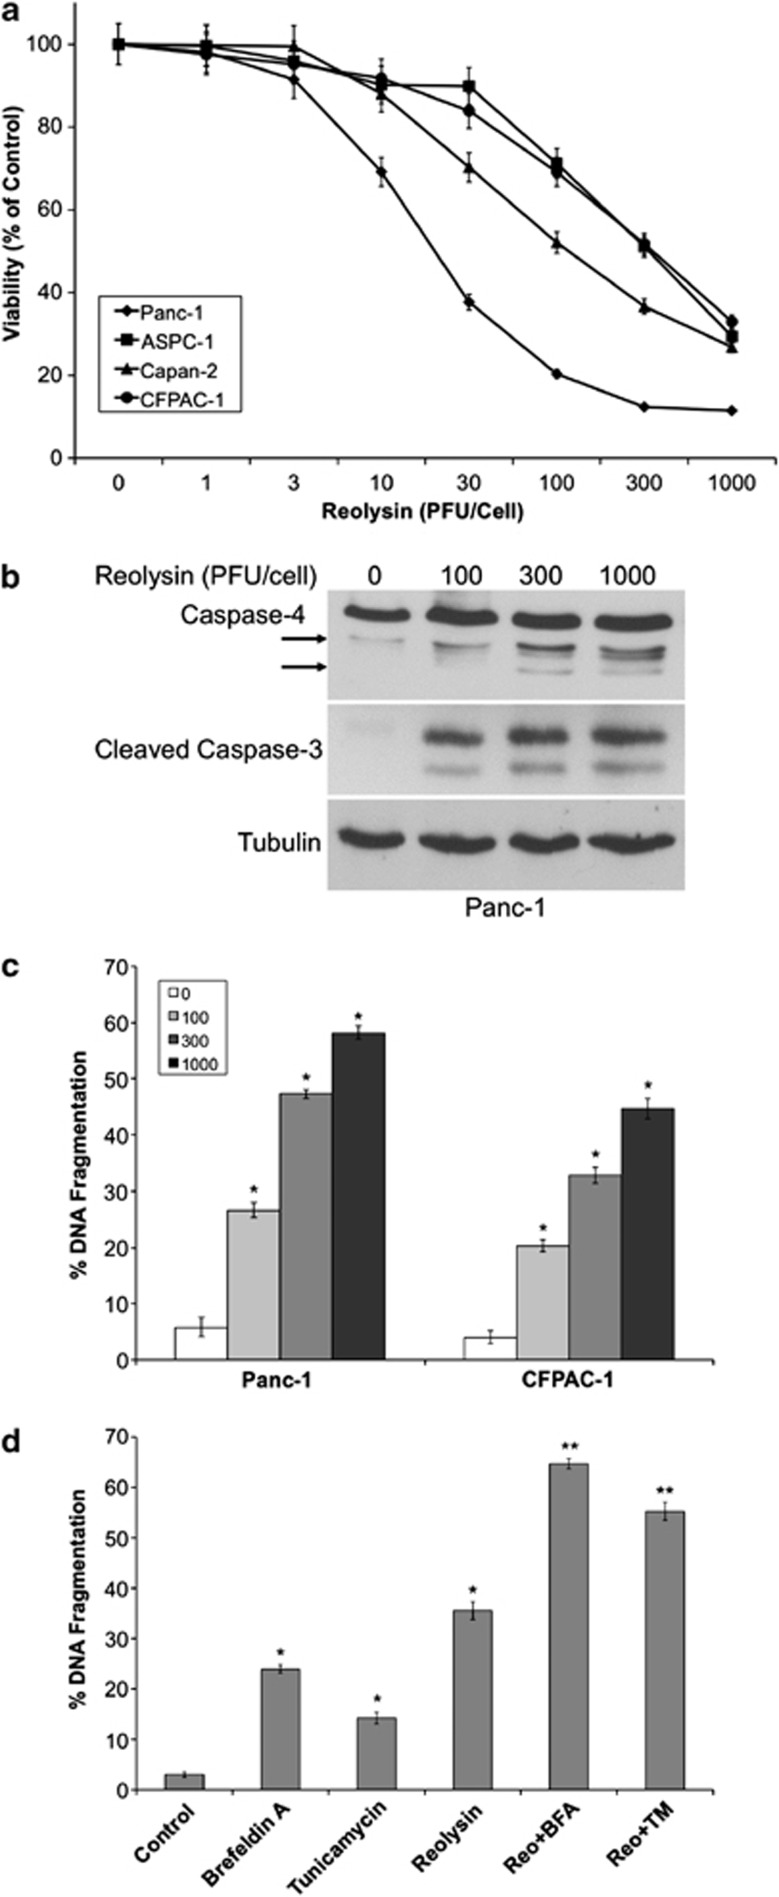 Reolysin promotes caspase-4 processing and apoptosis and sensitizes cells to ER stress-mediated apoptosis. ( a ) Reolysin decreases cell viability in a panel of pancreatic cancer cell lines. Cells were treated with the indicated concentrations of Reolysin for 72h. Cell viability was measured by MTT assay. Mean±S.D.,  n =3. ( b ) Reolysin promotes cleavage of caspase-4 and caspase-3. Panc-1 cells were treated with the indicated concentrations of Reolysin for 48h, and caspase cleavage was measured by immunoblotting. Arrows denote cleaved caspase-4 fragments. ( c ) Reolysin induces apoptosis. Panc-1 and CFPAC-1 cells were treated with Reolysin for 48h. Apoptosis was measured by PI-FACS analysis. Mean±S.D.,  n =3. *Indicates a significant difference compared with controls. ( d ) Reolysin augments ER stress-mediated apoptosis. Panc-1 cells were treated for 48h with 300PFU/cell Reolysin, 5 μ g/ml tunicamycin, 5 μ M brefeldin A, and combinations. Mean±S.D.,  n =3. *Indicates a significant difference compared with controls; **indicates a significant difference compared with either single-agent treatment  P